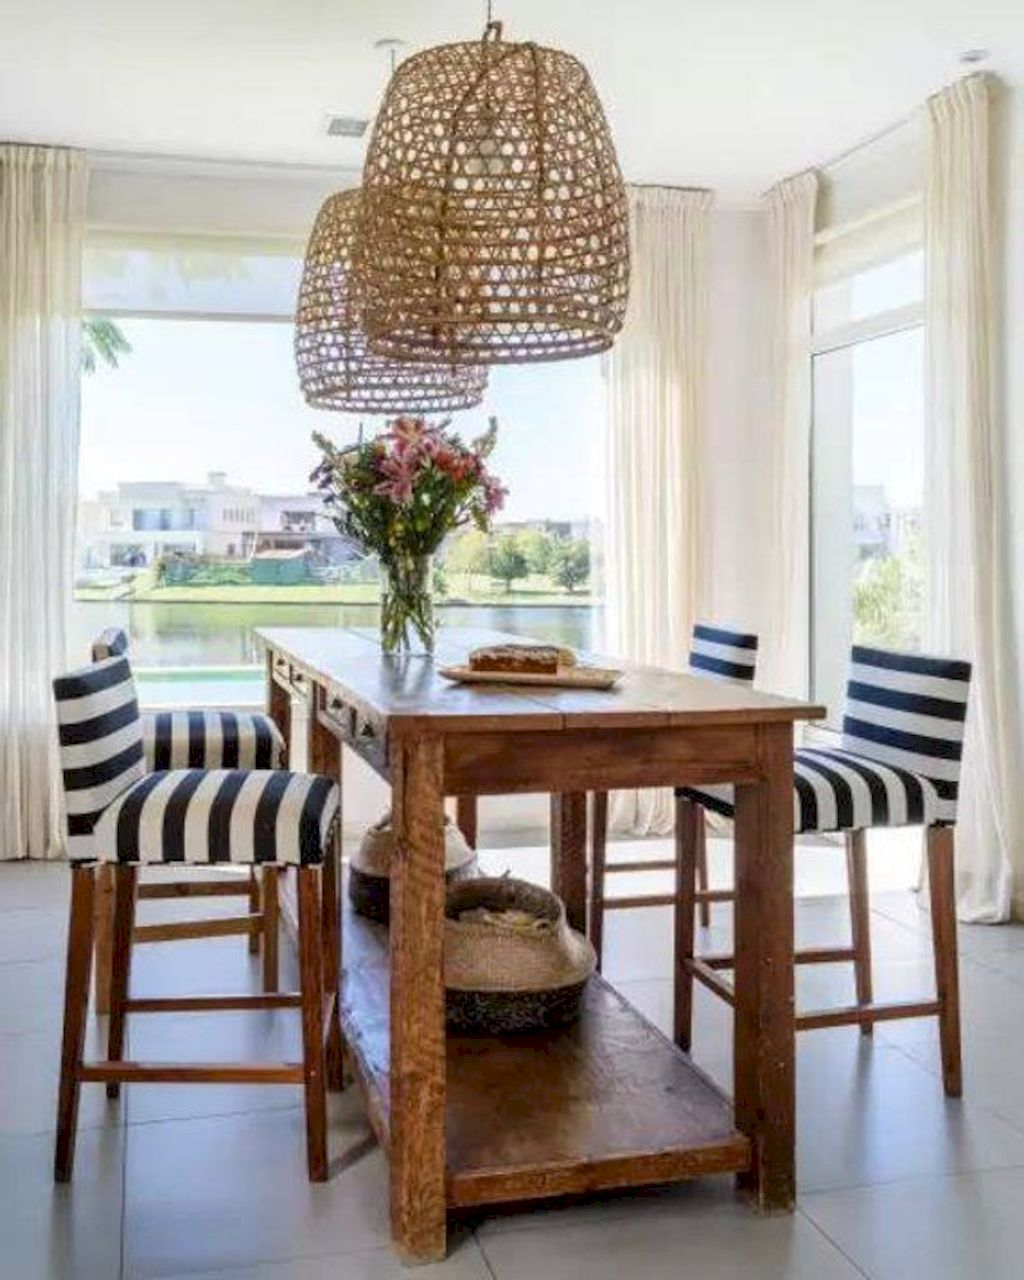 Eclectic home dining room inspired from beach home eating space rich of fresh vibes perfect for a recreational rooms update Image 25